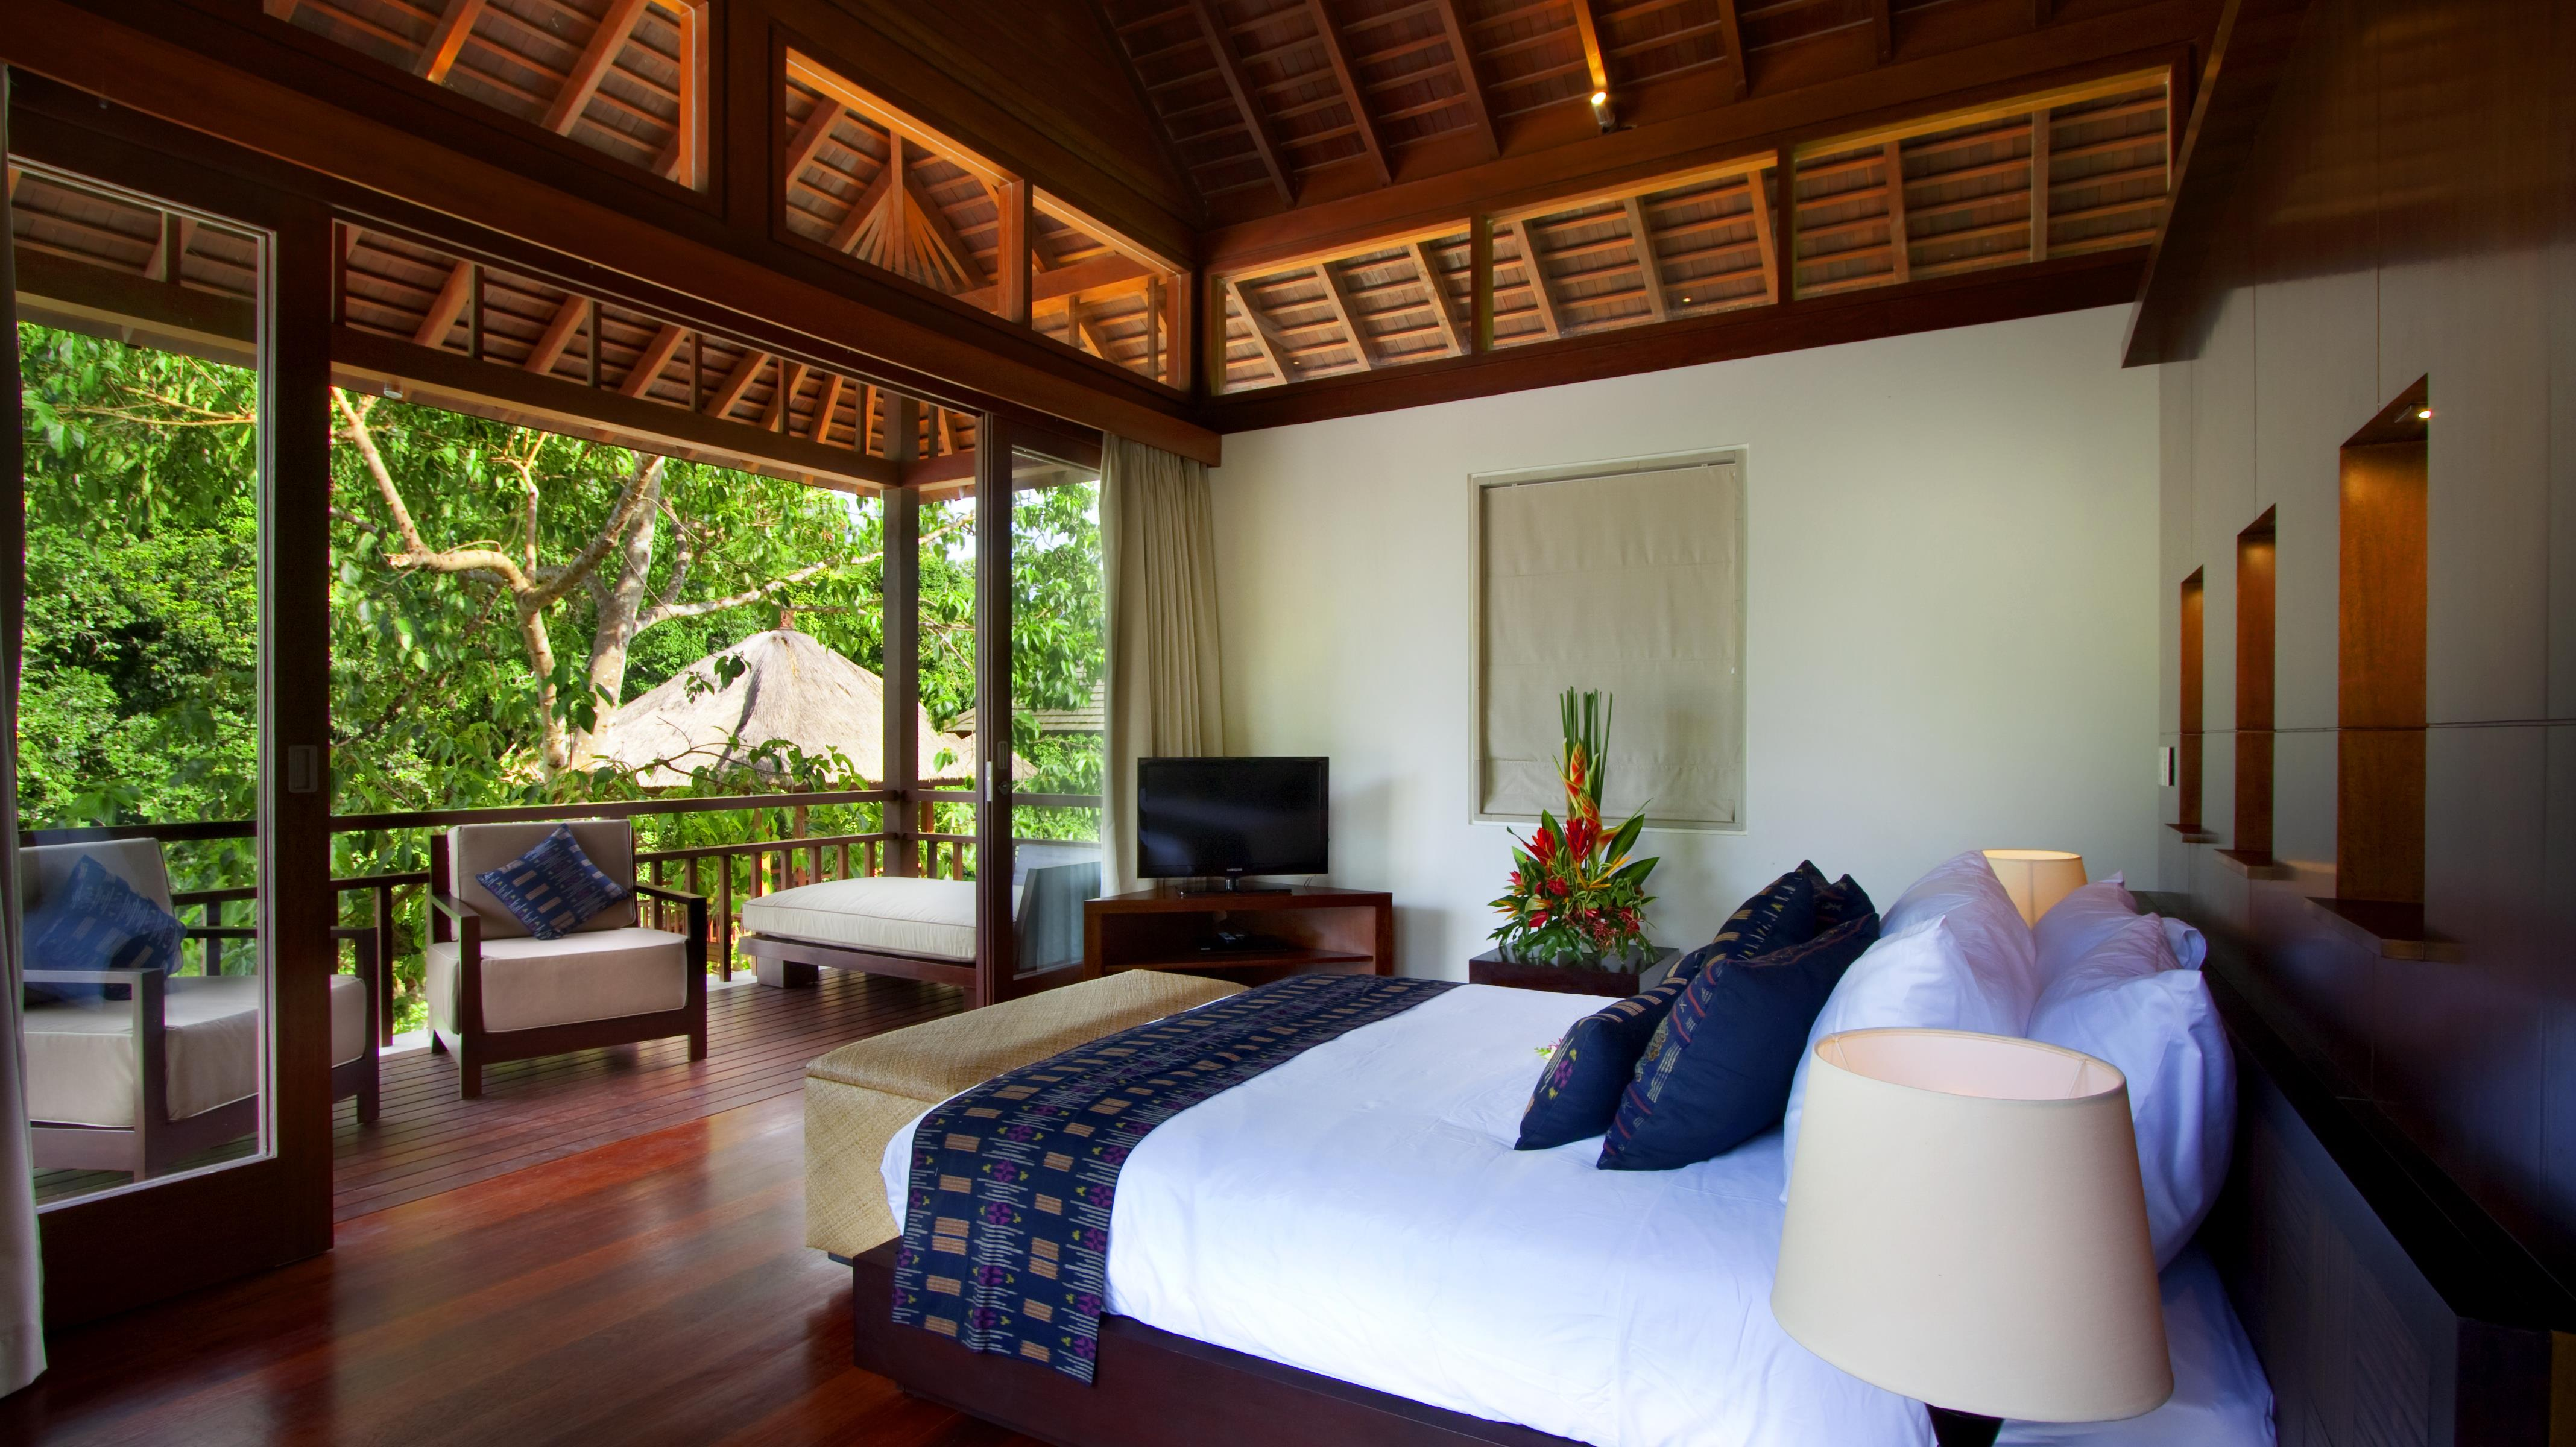 Bedroom and Balcony with View - Villa Champuhan - Seseh, Bali